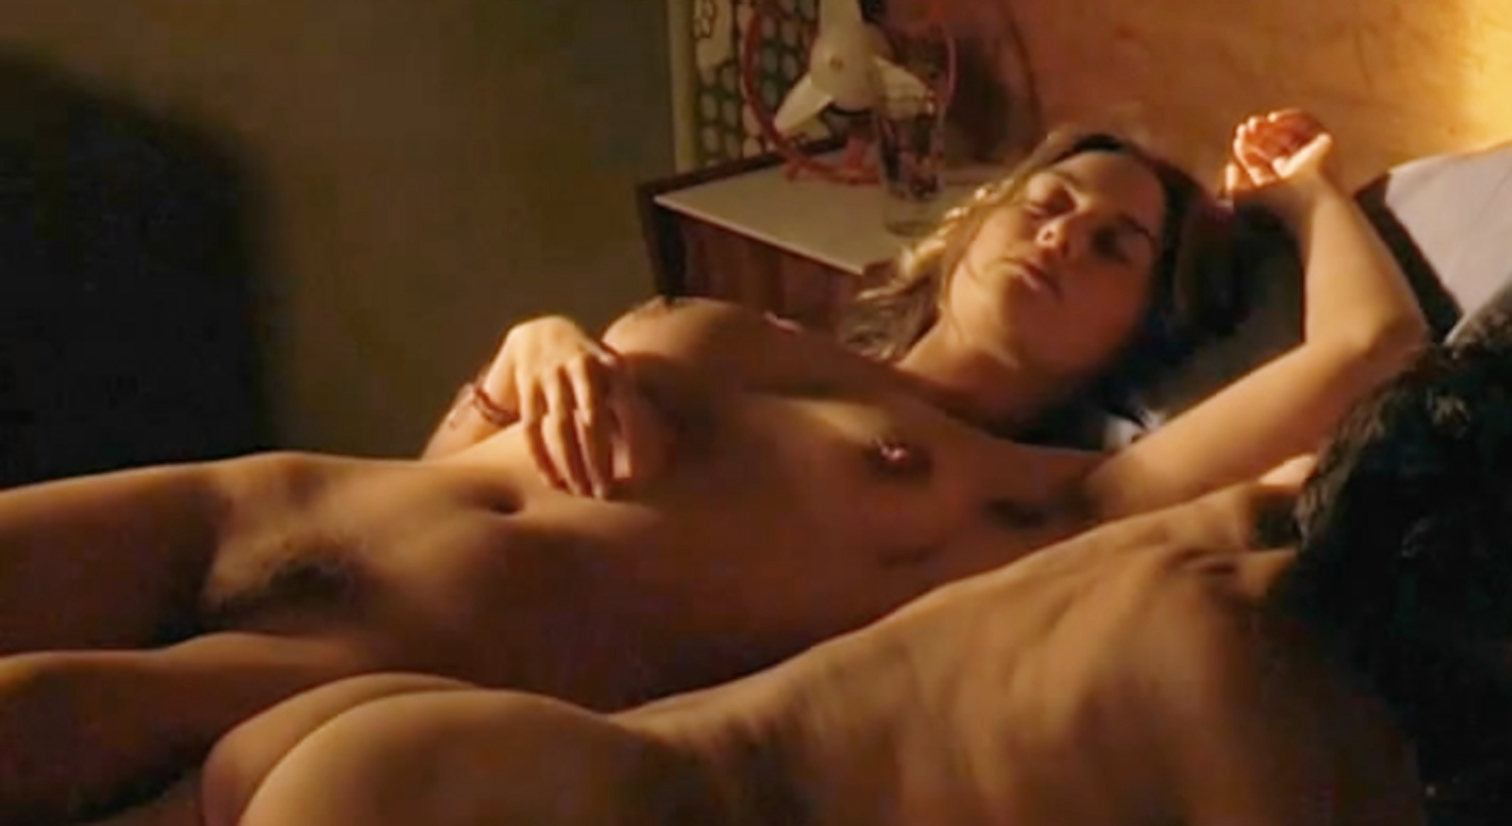 Think, New sexy naked image kate winslet excellent